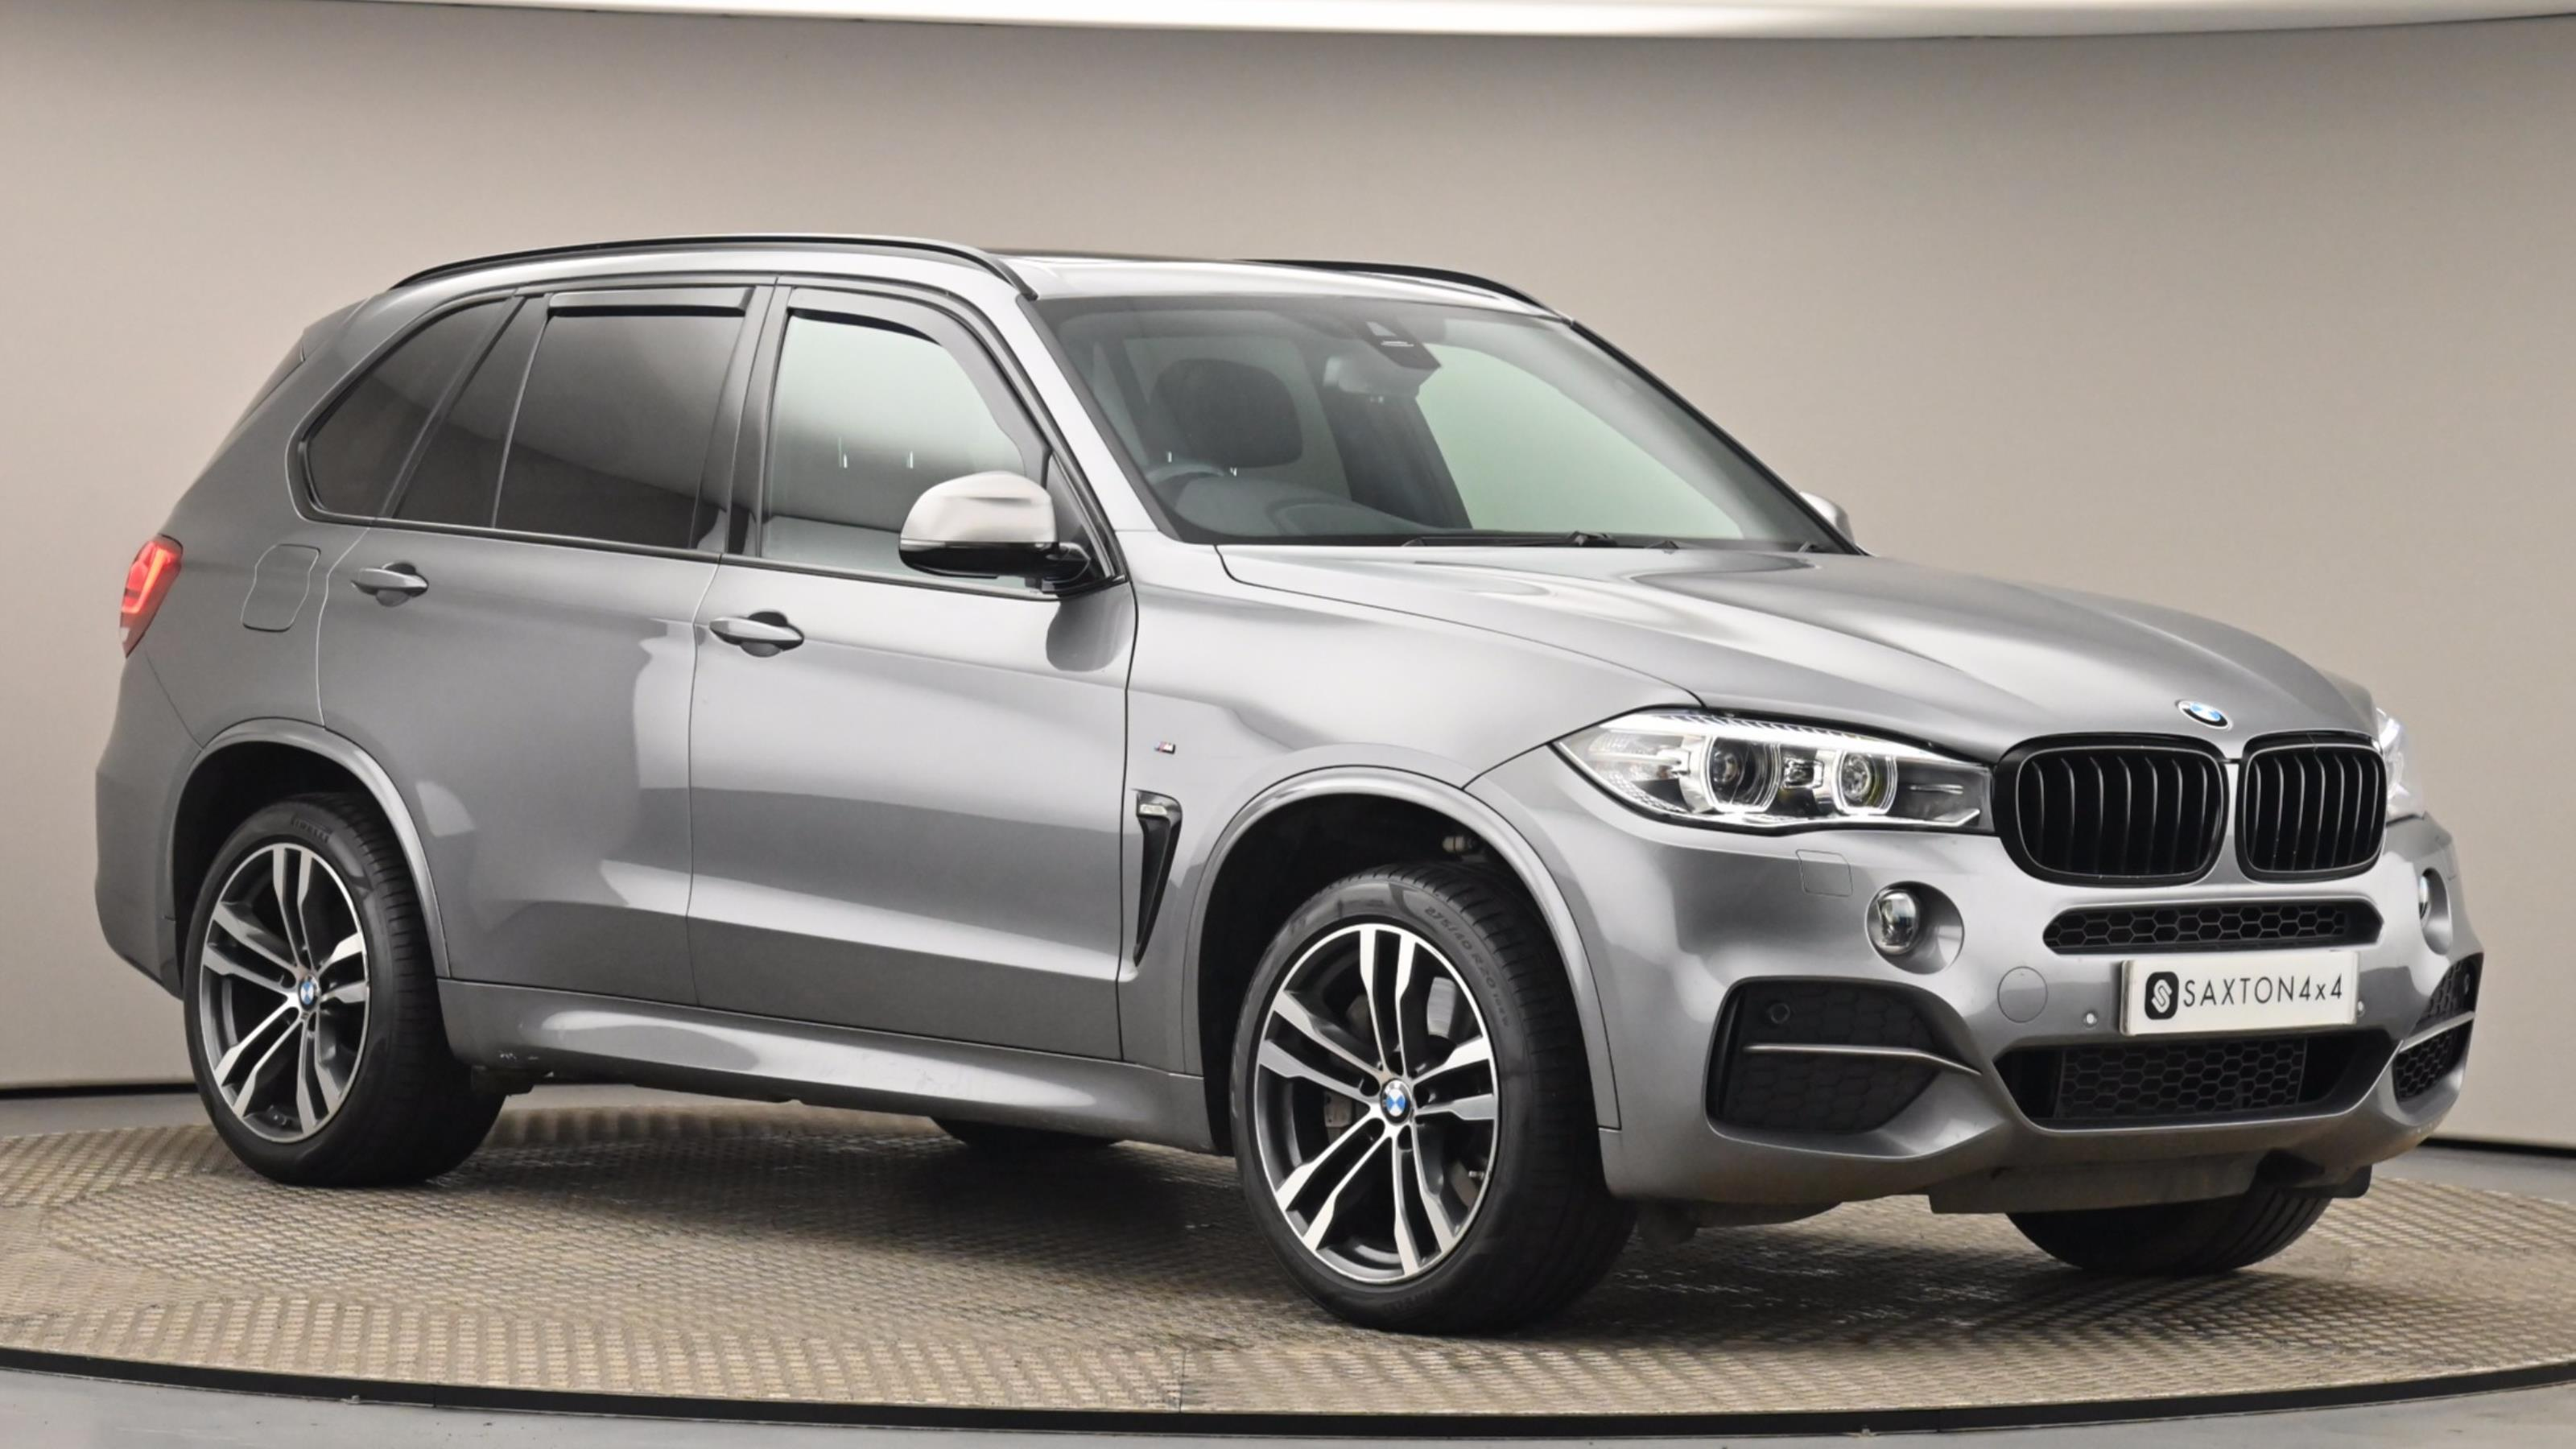 Used 2016 BMW X5 xDrive M50d 5dr Auto [7 Seat] GREY at Saxton4x4